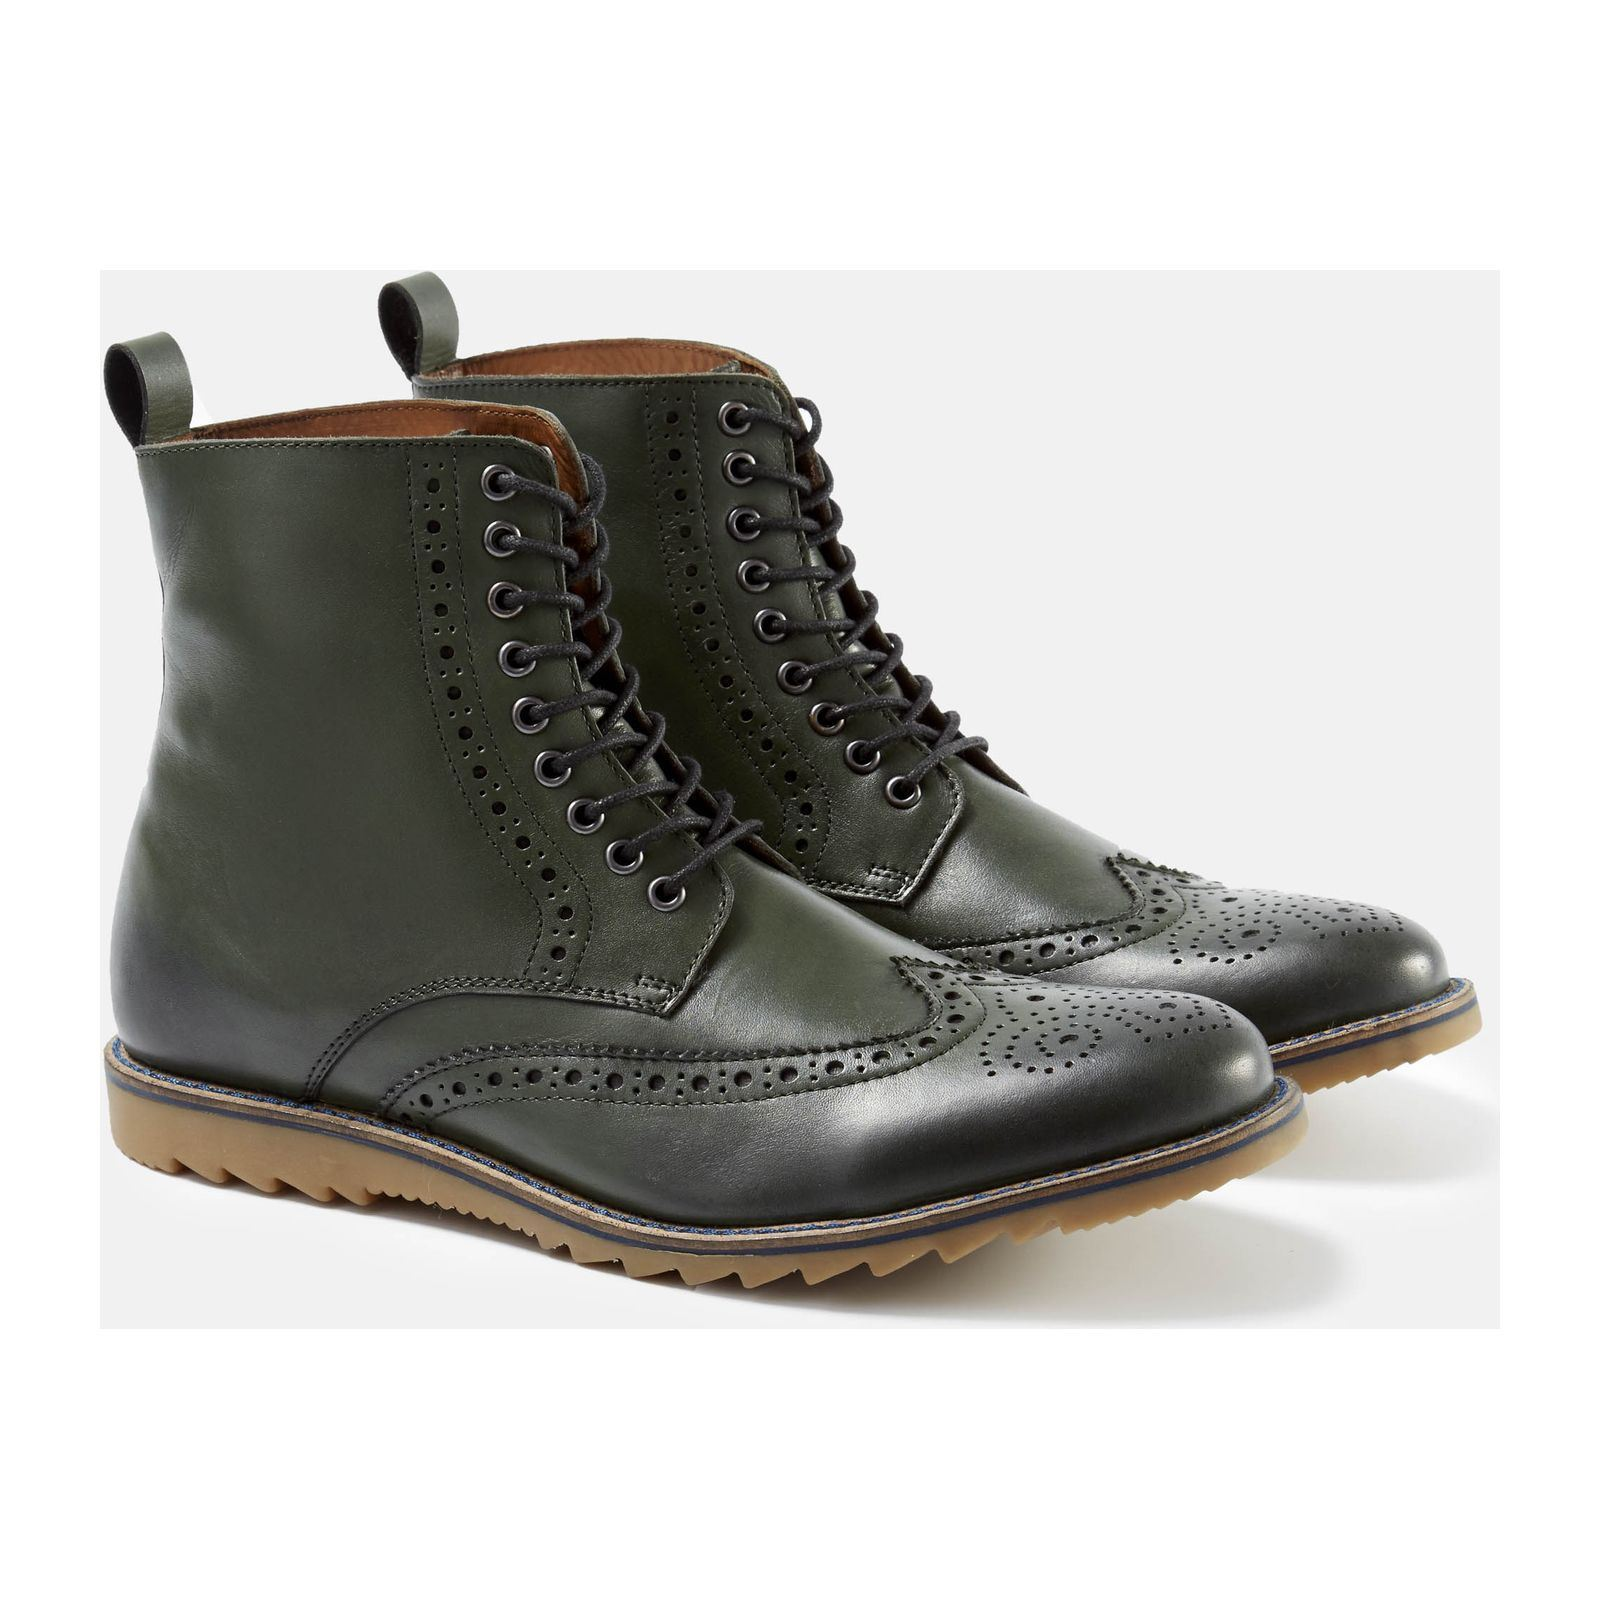 celio fyfleuri bottines en cuir vert brandalley. Black Bedroom Furniture Sets. Home Design Ideas